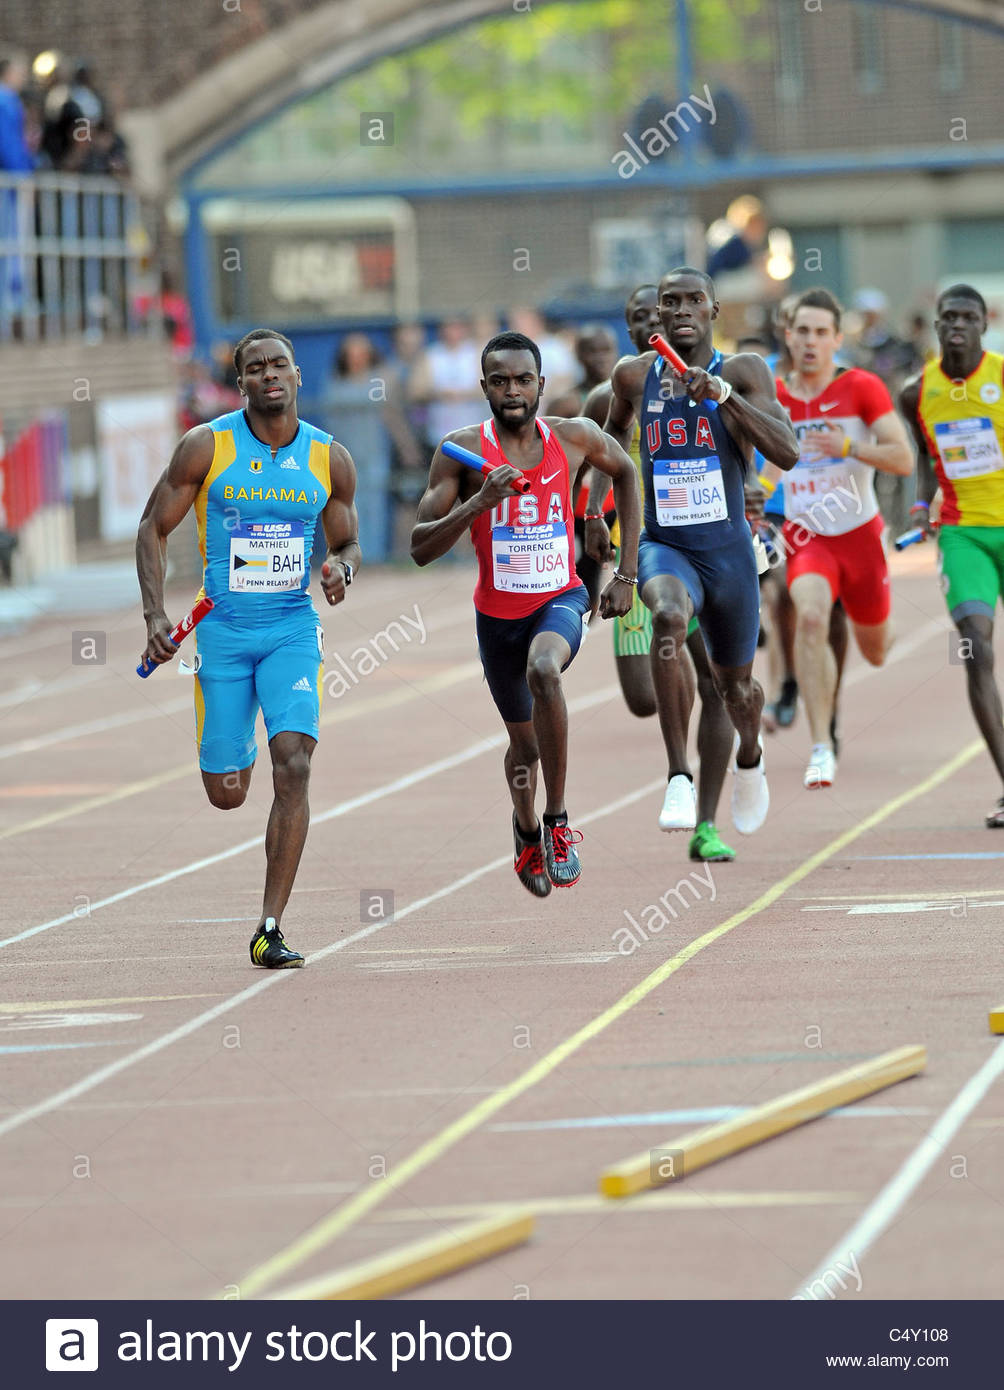 4x400 Olympic Development Men's Relay at the 2011 Penn Relays - teams from the USA and Bahamas shown - Stock Image